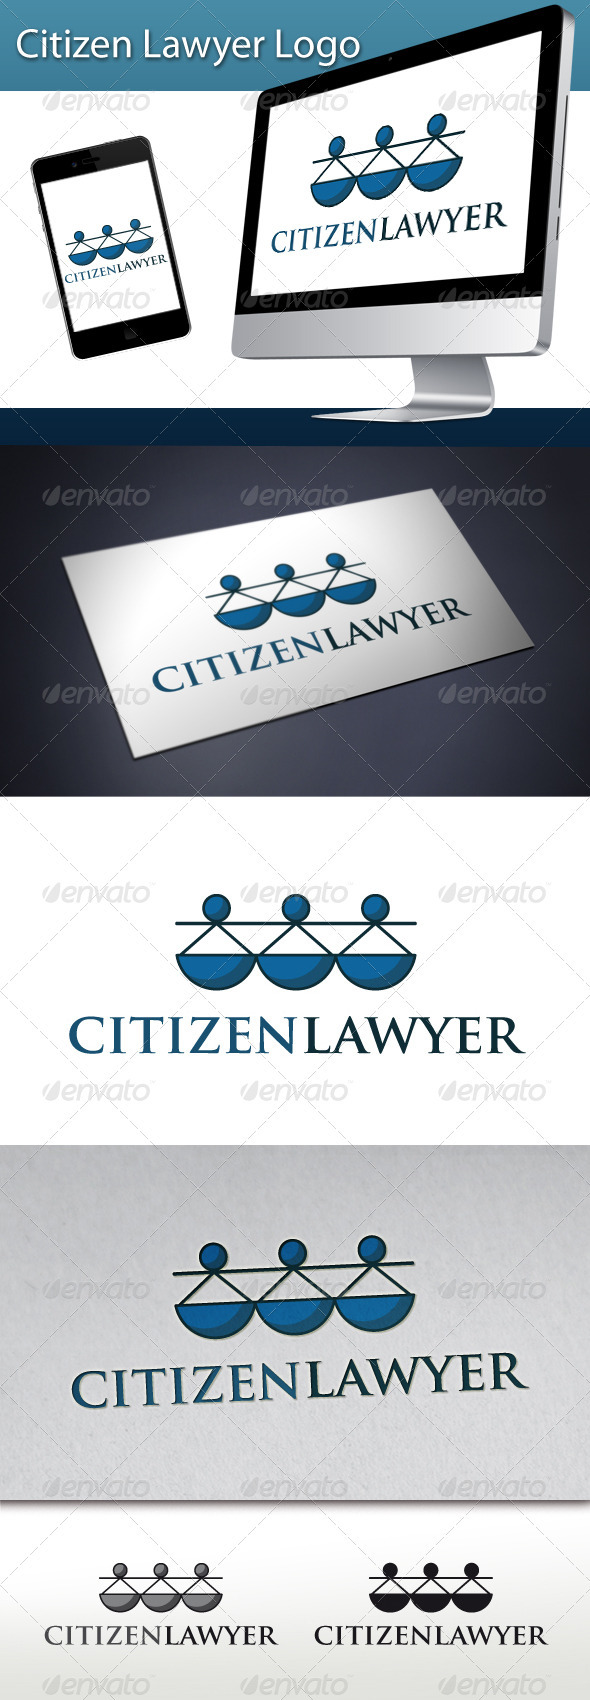 GraphicRiver Citizen Lawyer Logo 3289148